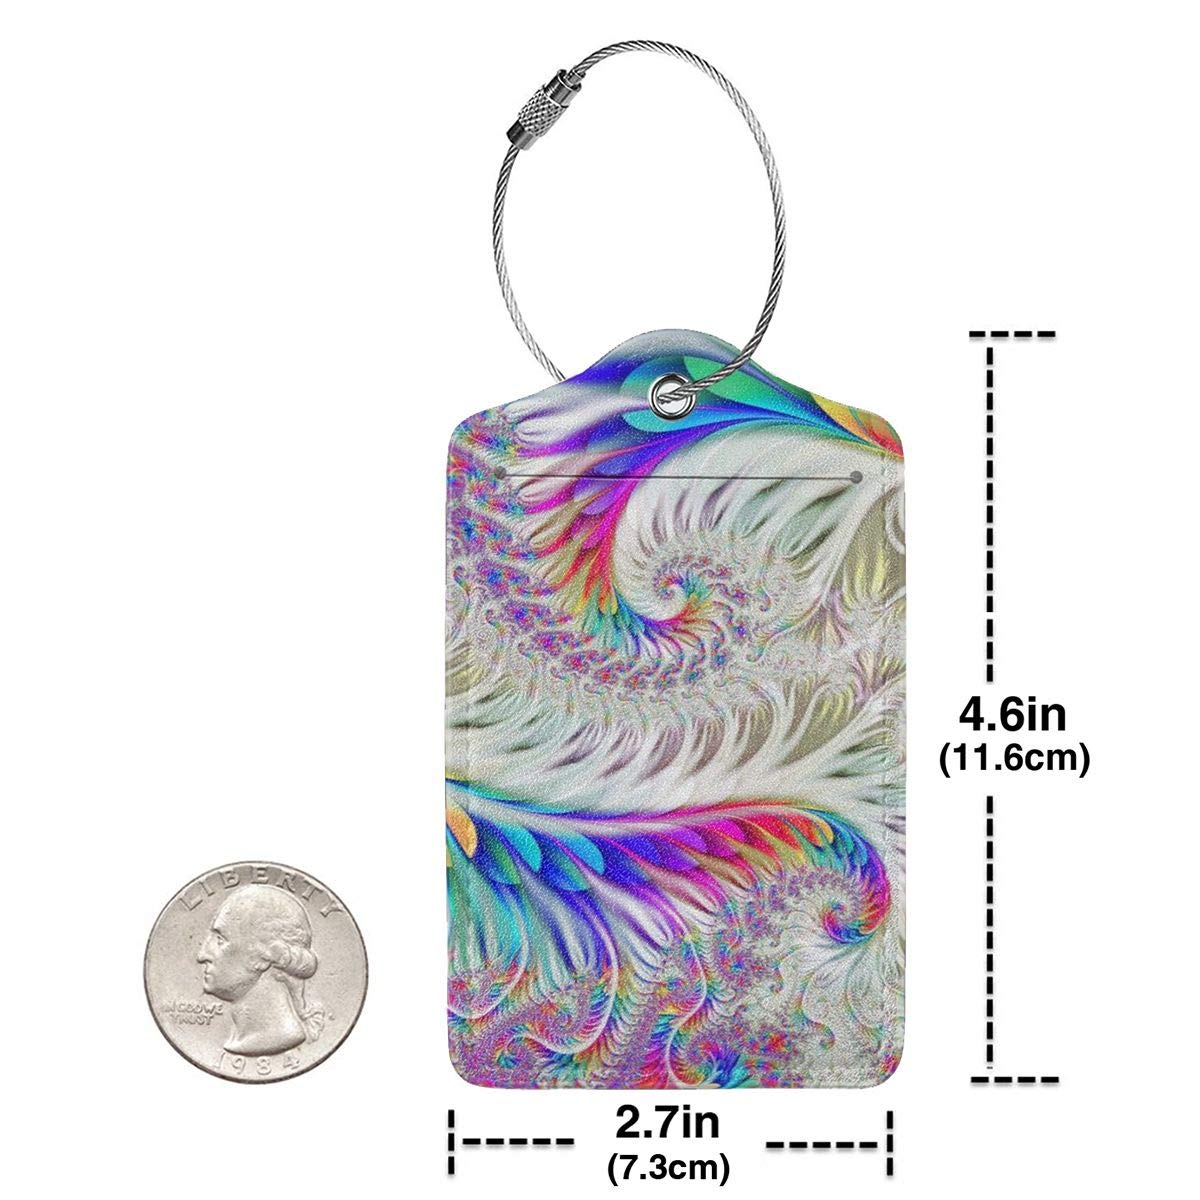 Colorful Tie Dye 2.7 x 4.6 Blank Tag Key Tags for Christmas Birthday Couples Gift Leather Luggage Tags Full Privacy Cover and Stainless Steel Loop 1 2 4 Pcs Set